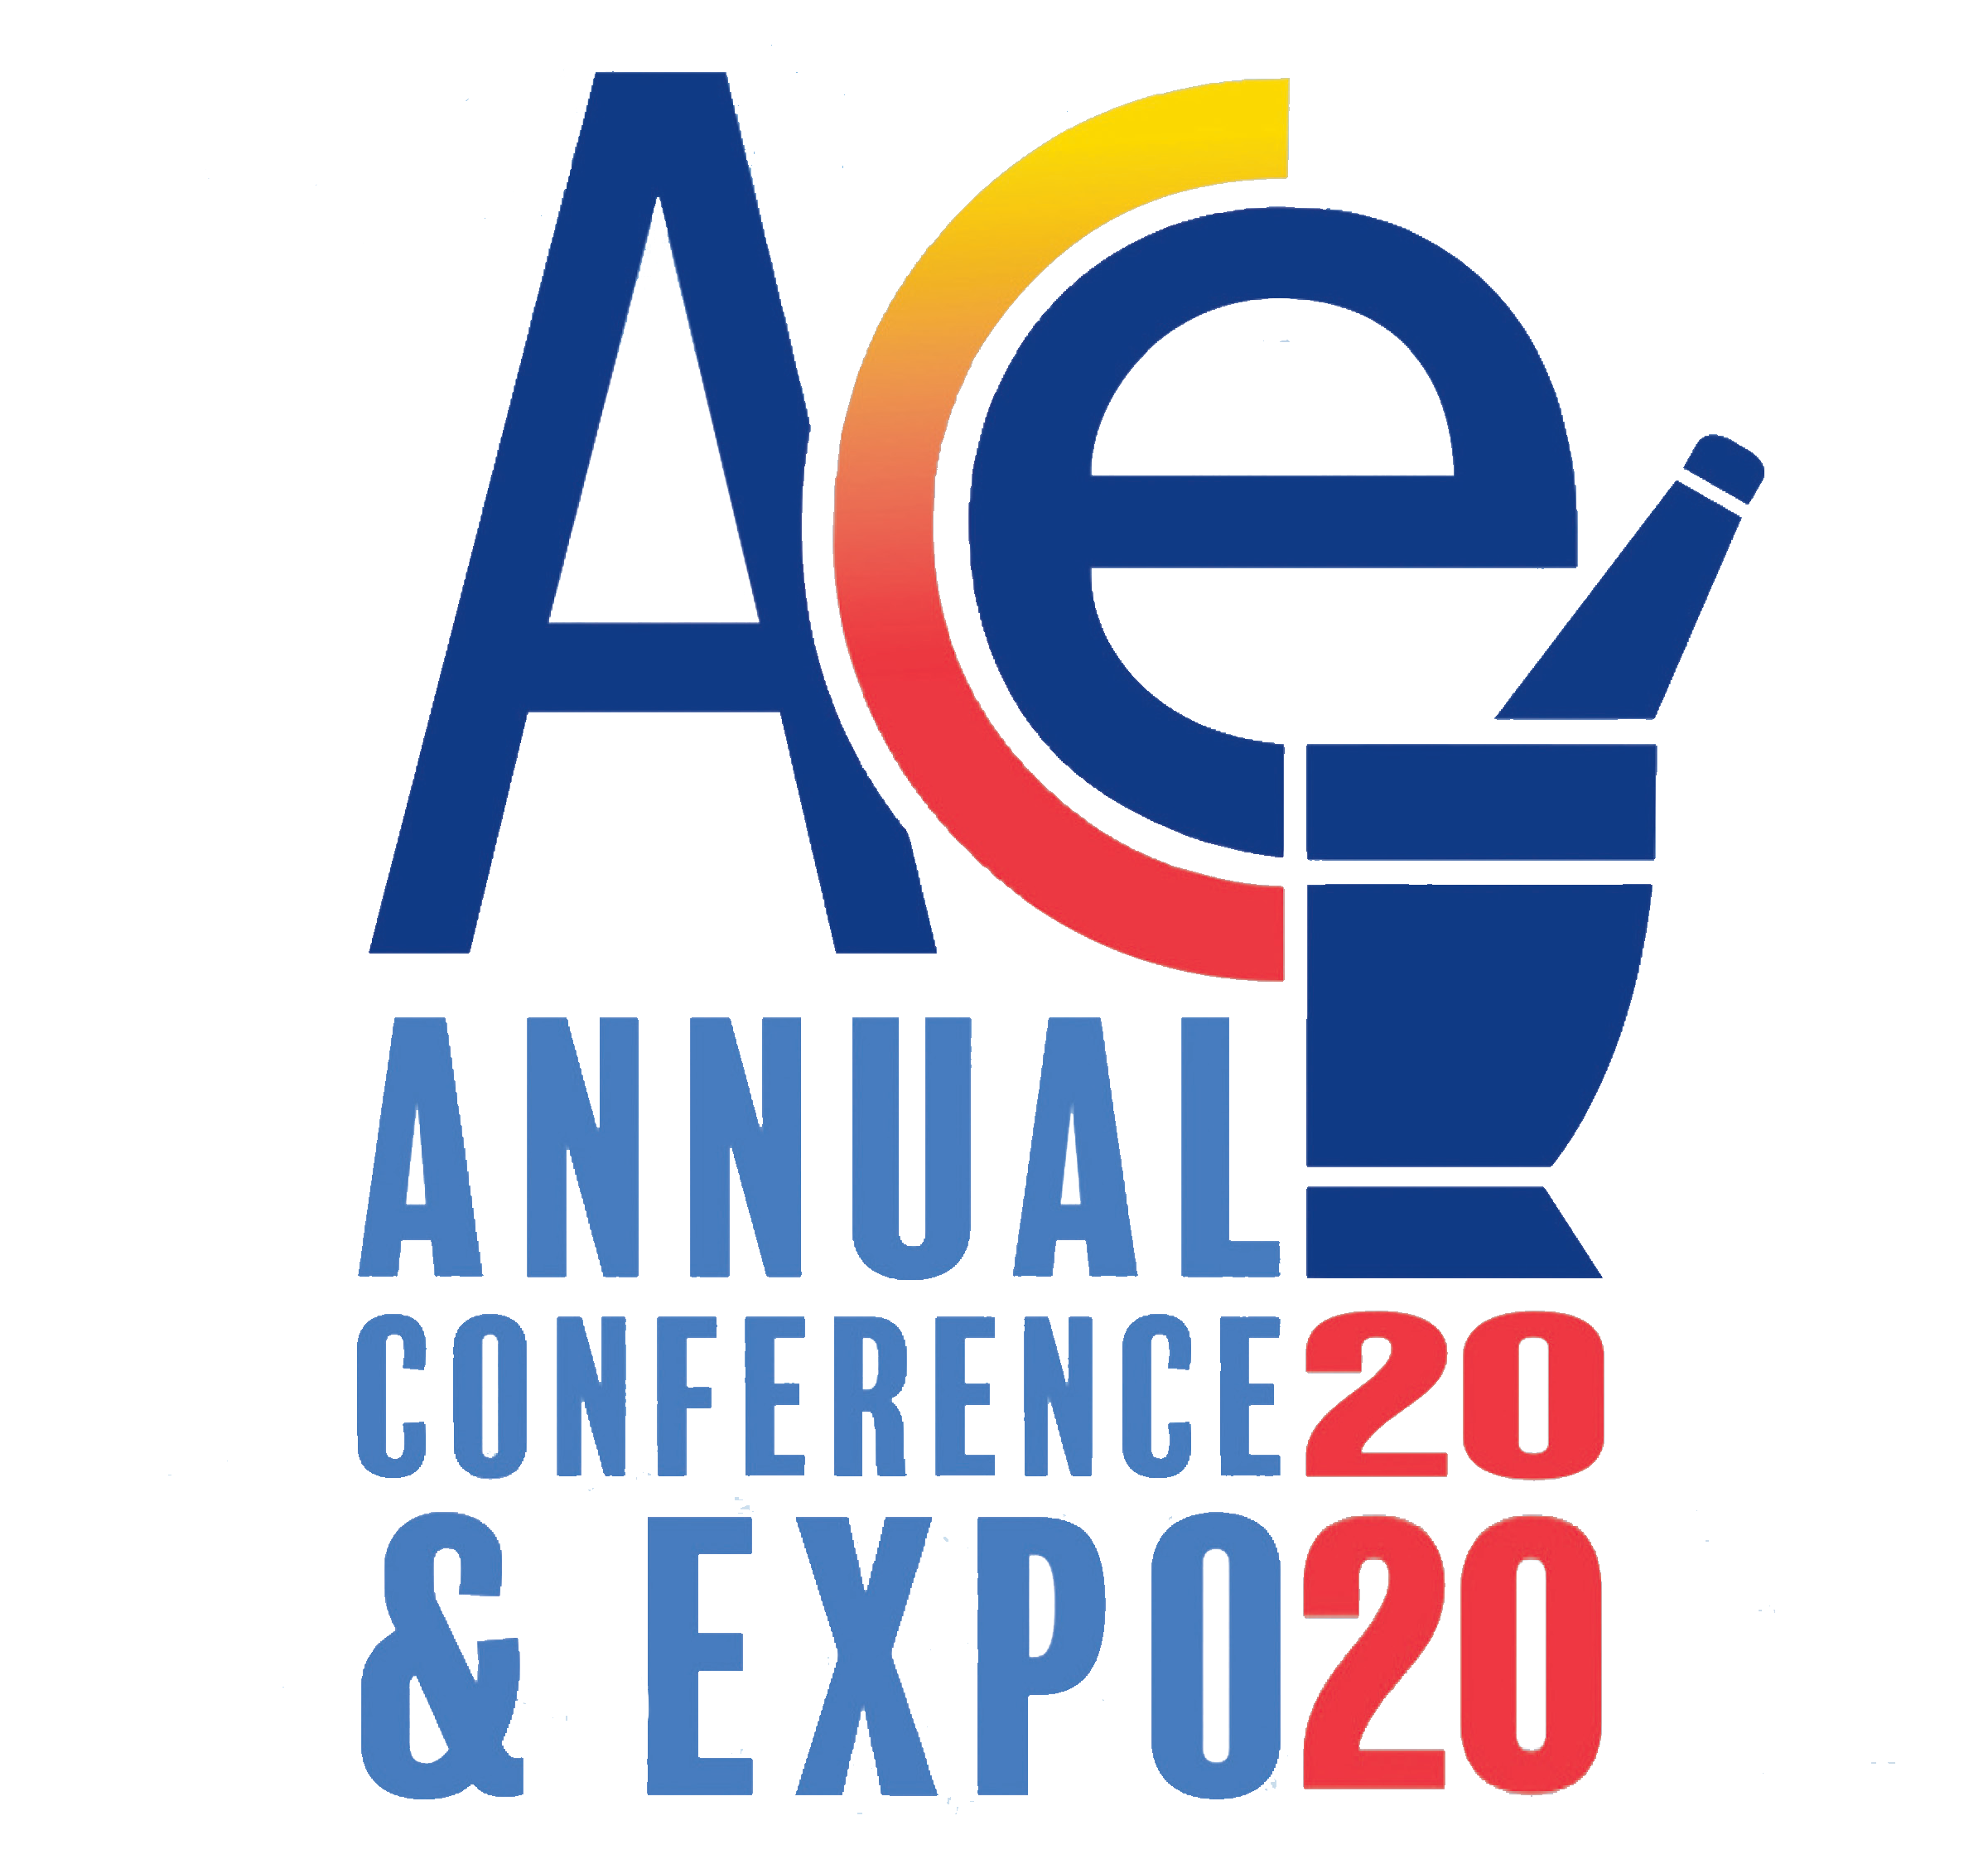 ACE 2020 Vertical Logo